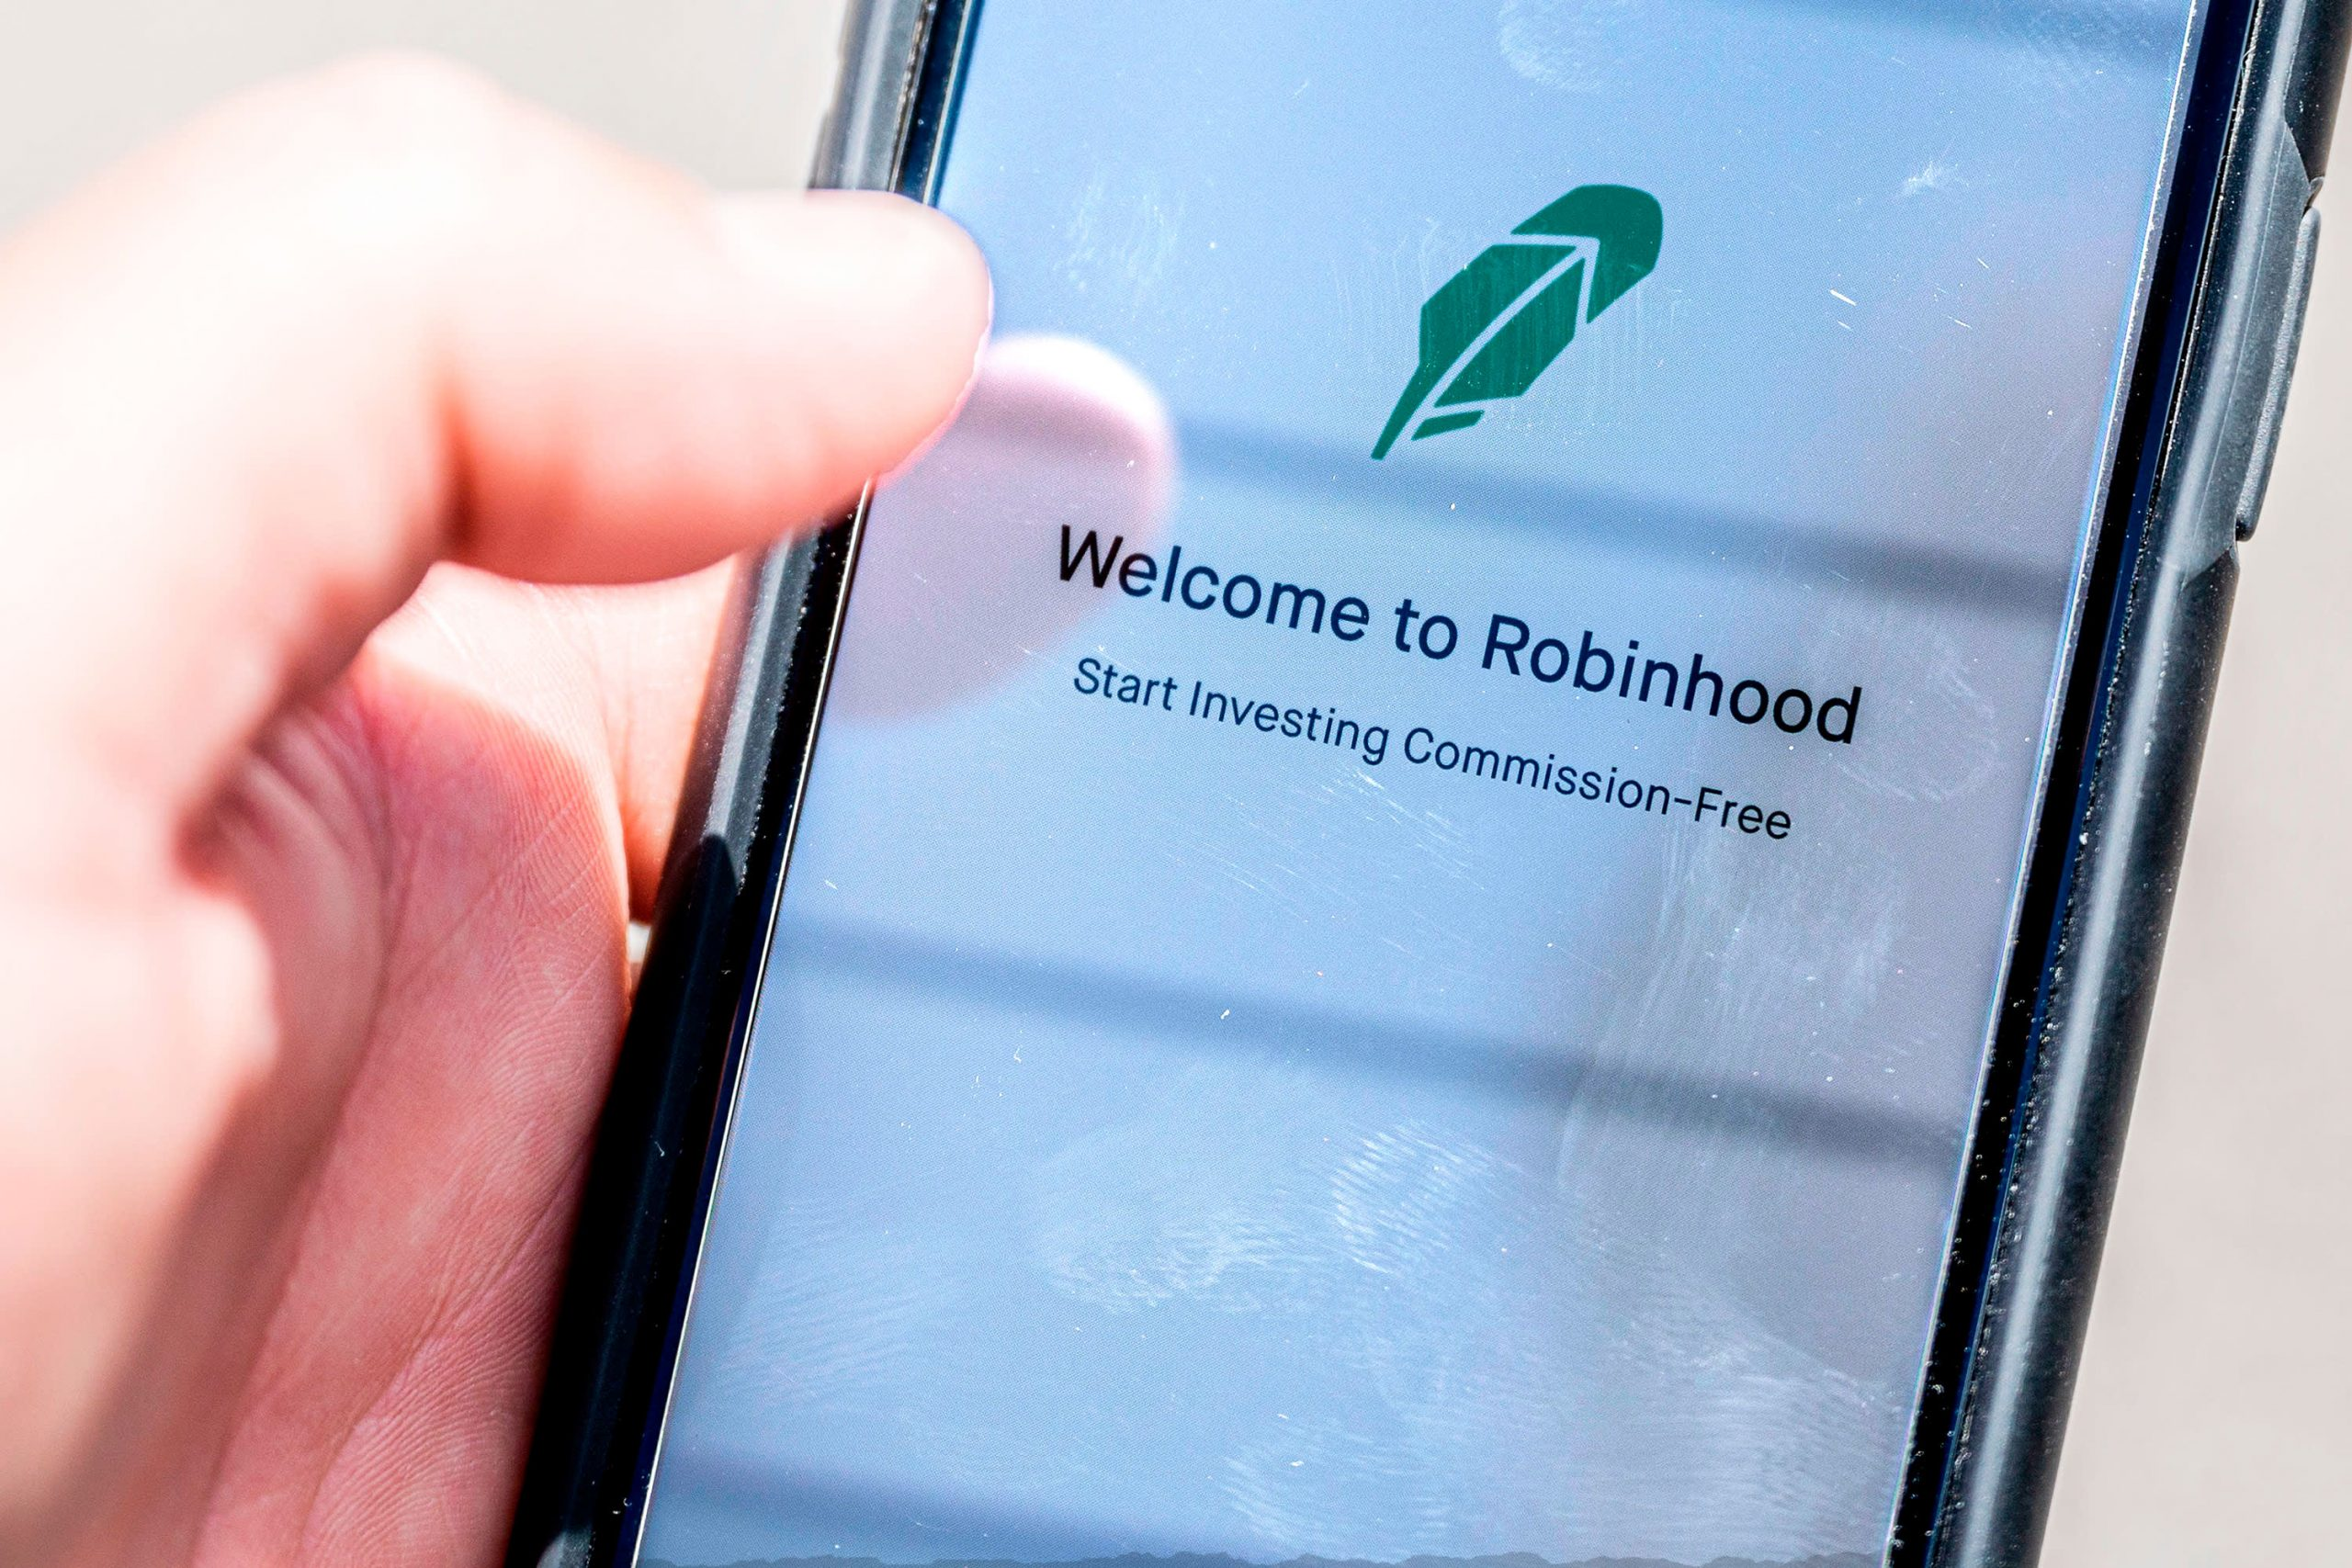 robinhood-ceo-says-most-customers-are-buy-and-hold-amid-gamestop-trading-frenzy